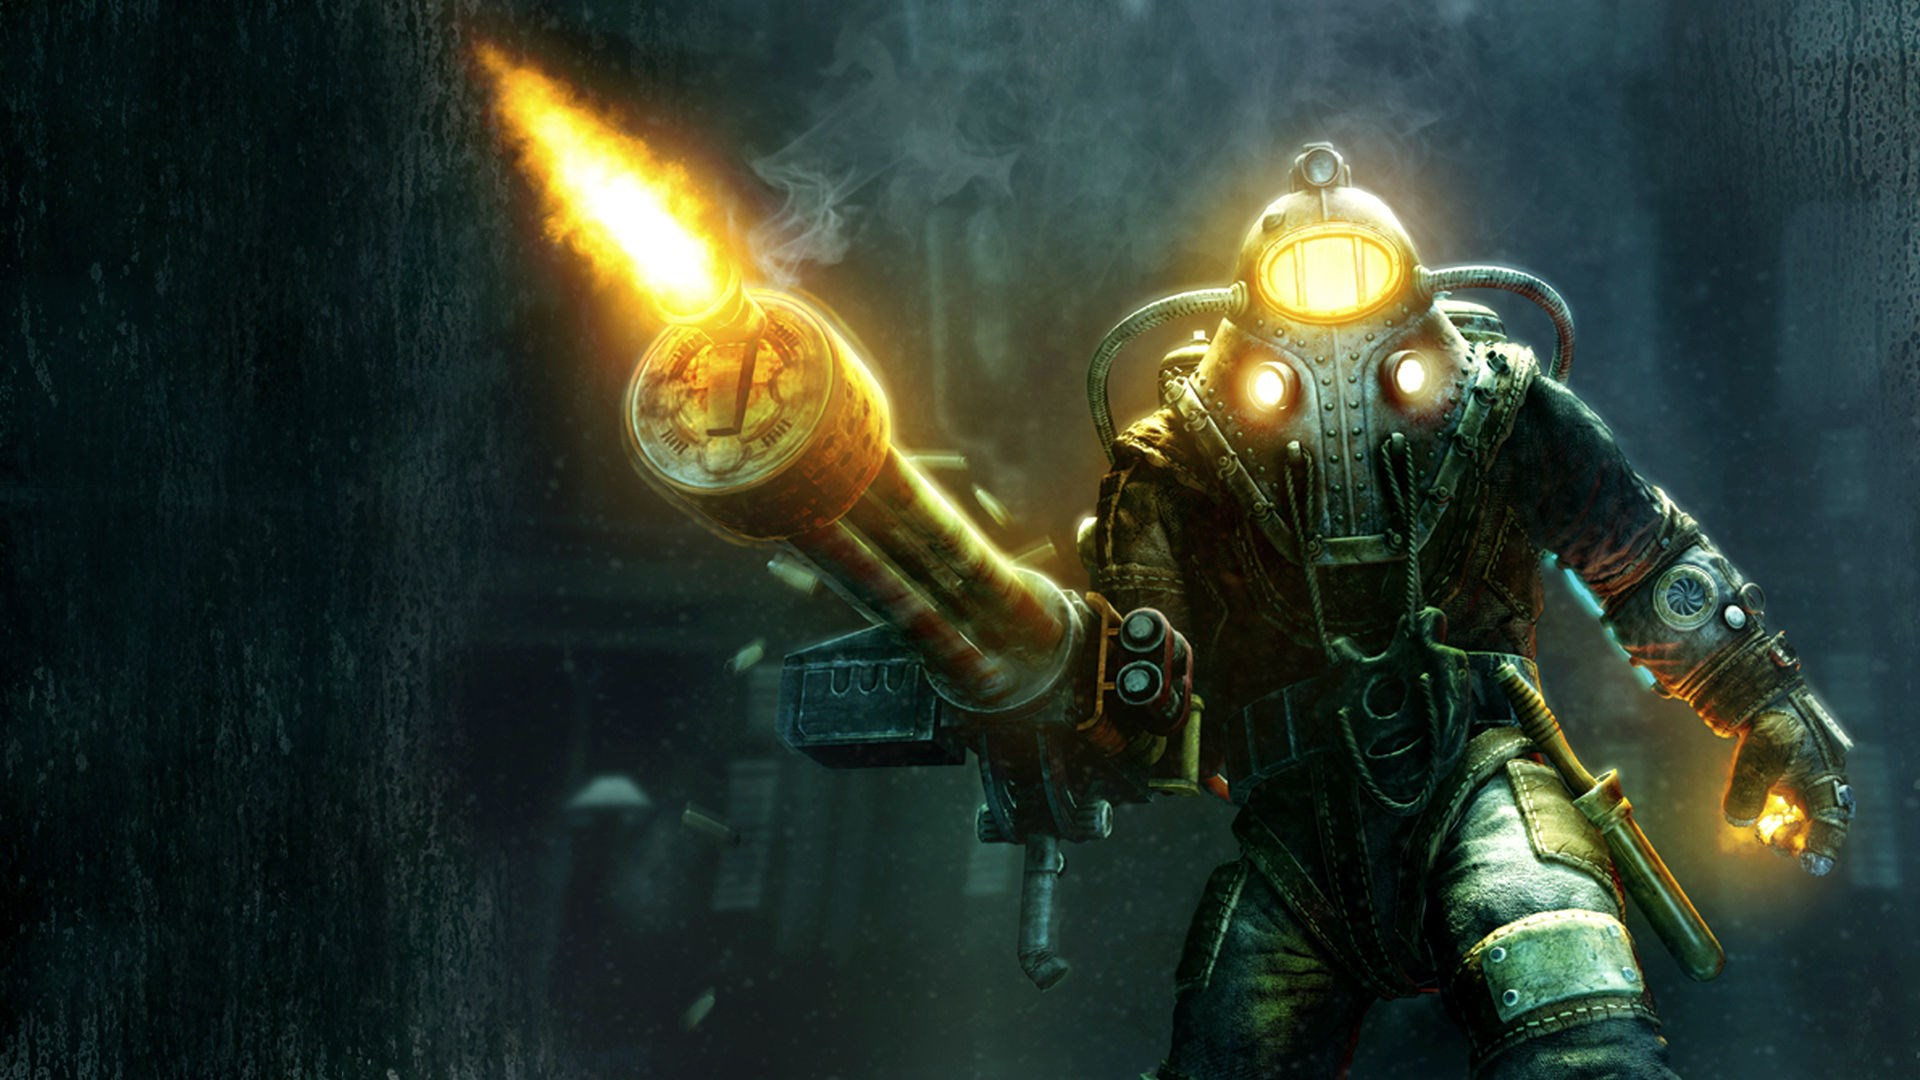 1920x1080px-bioshock-pictures-free-by-Lowell-Black-wallpaper-wpc5801133